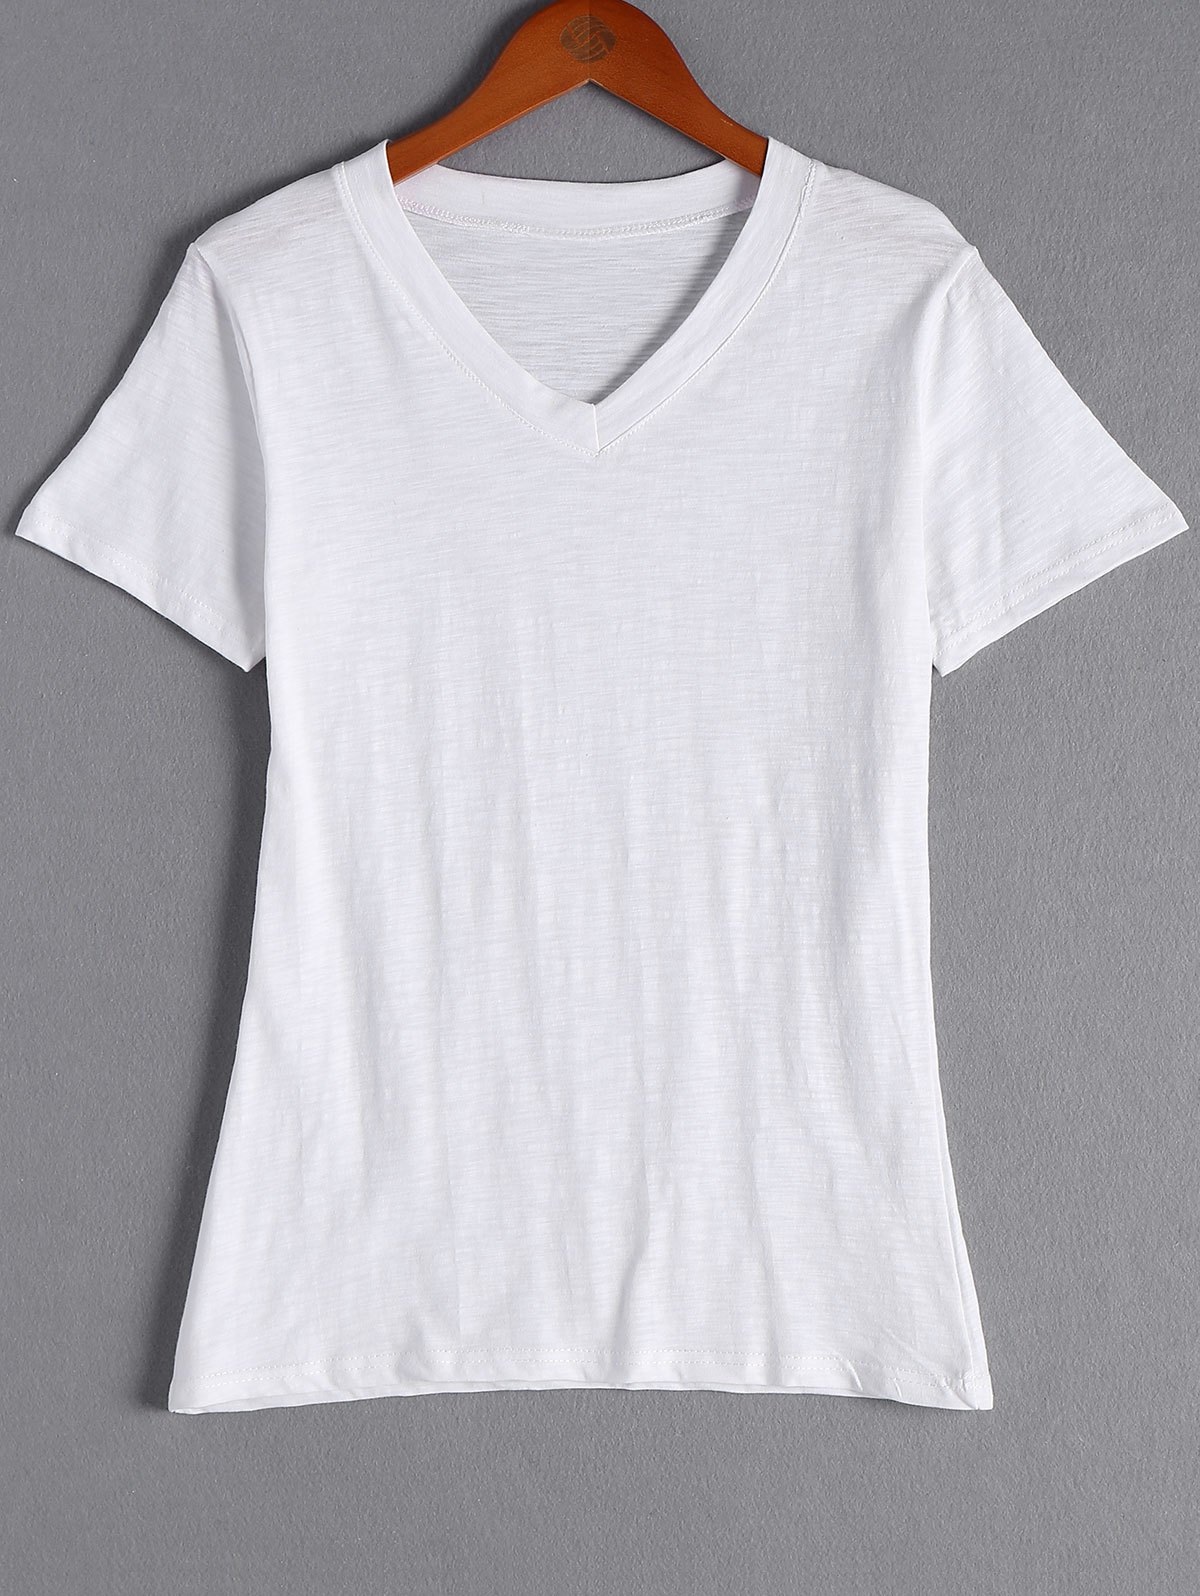 Simple Design Women's Solid Color V-Neck Short Sleeves T-Shirt - WHITE ONE SIZE(FIT SIZE XS TO M)